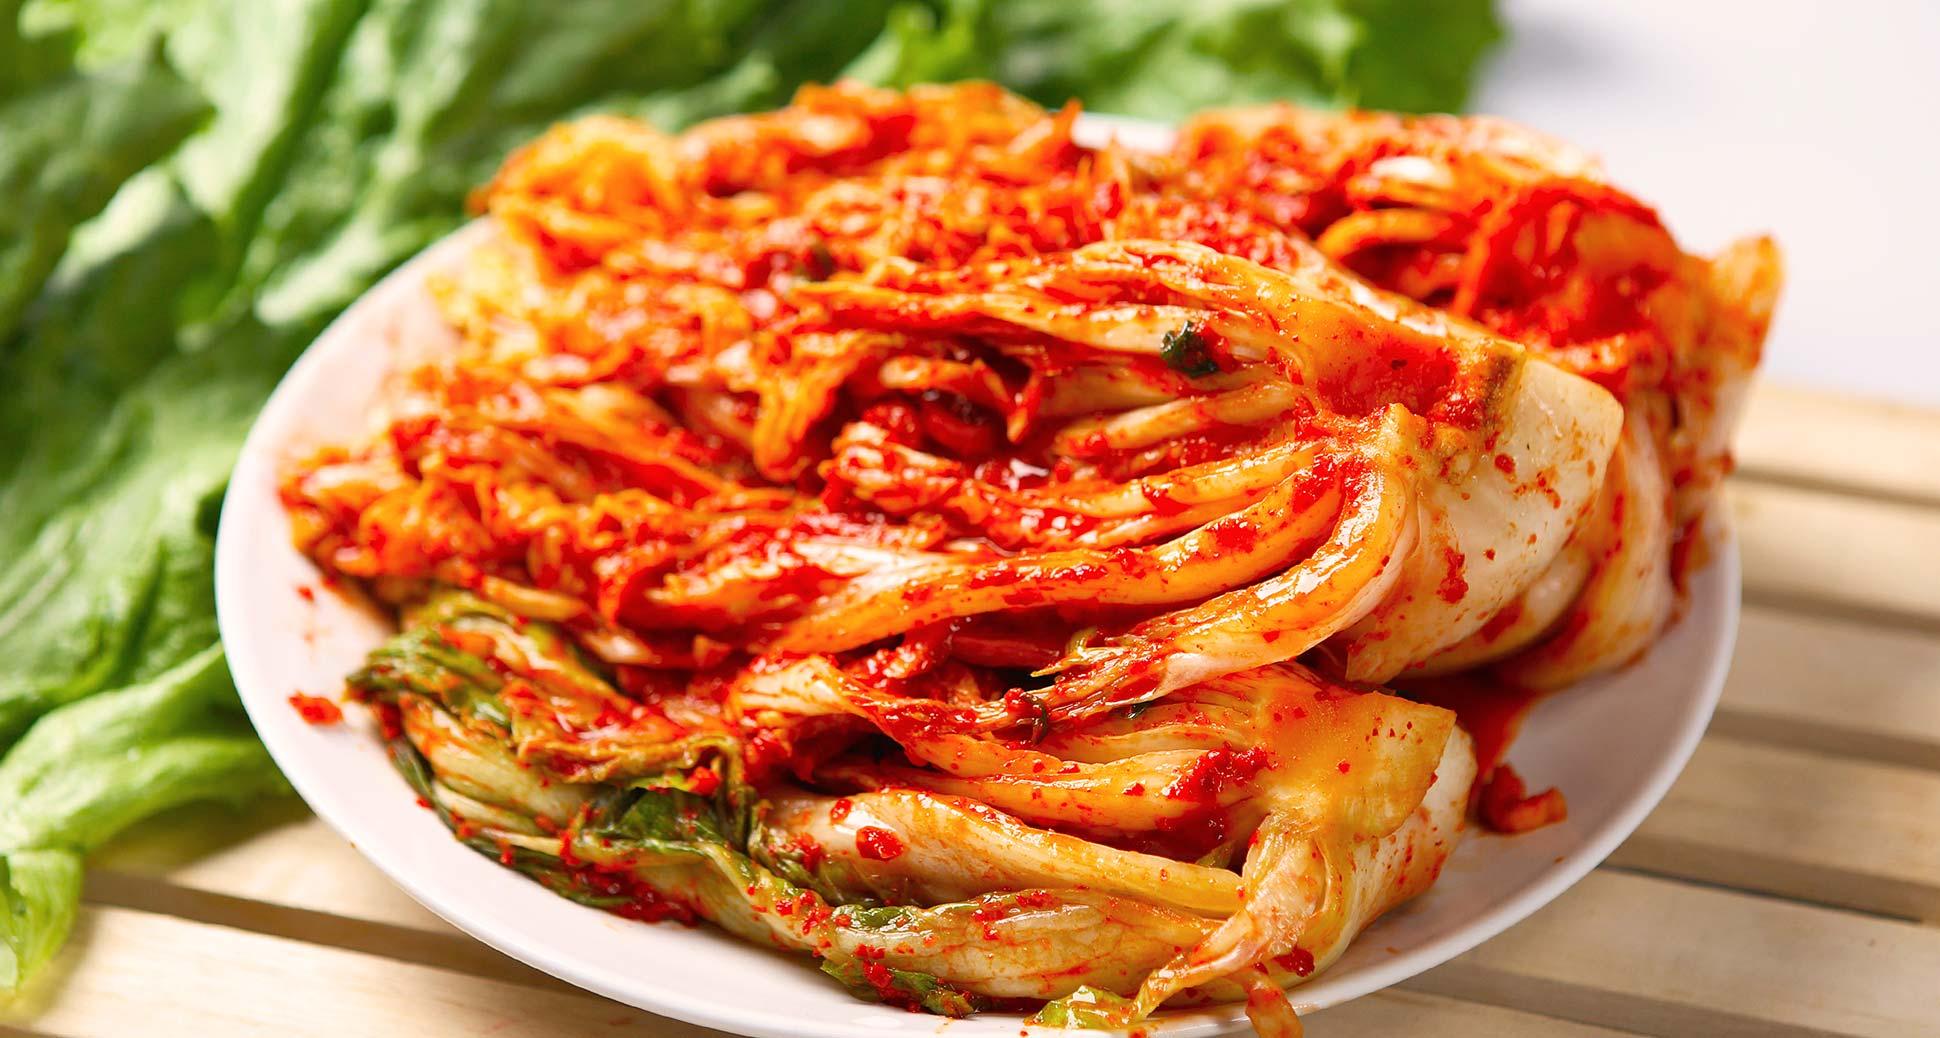 SUra-Korean-Cuisine-Koreas-Greatest-Food-Kimchi-Blog.jpg